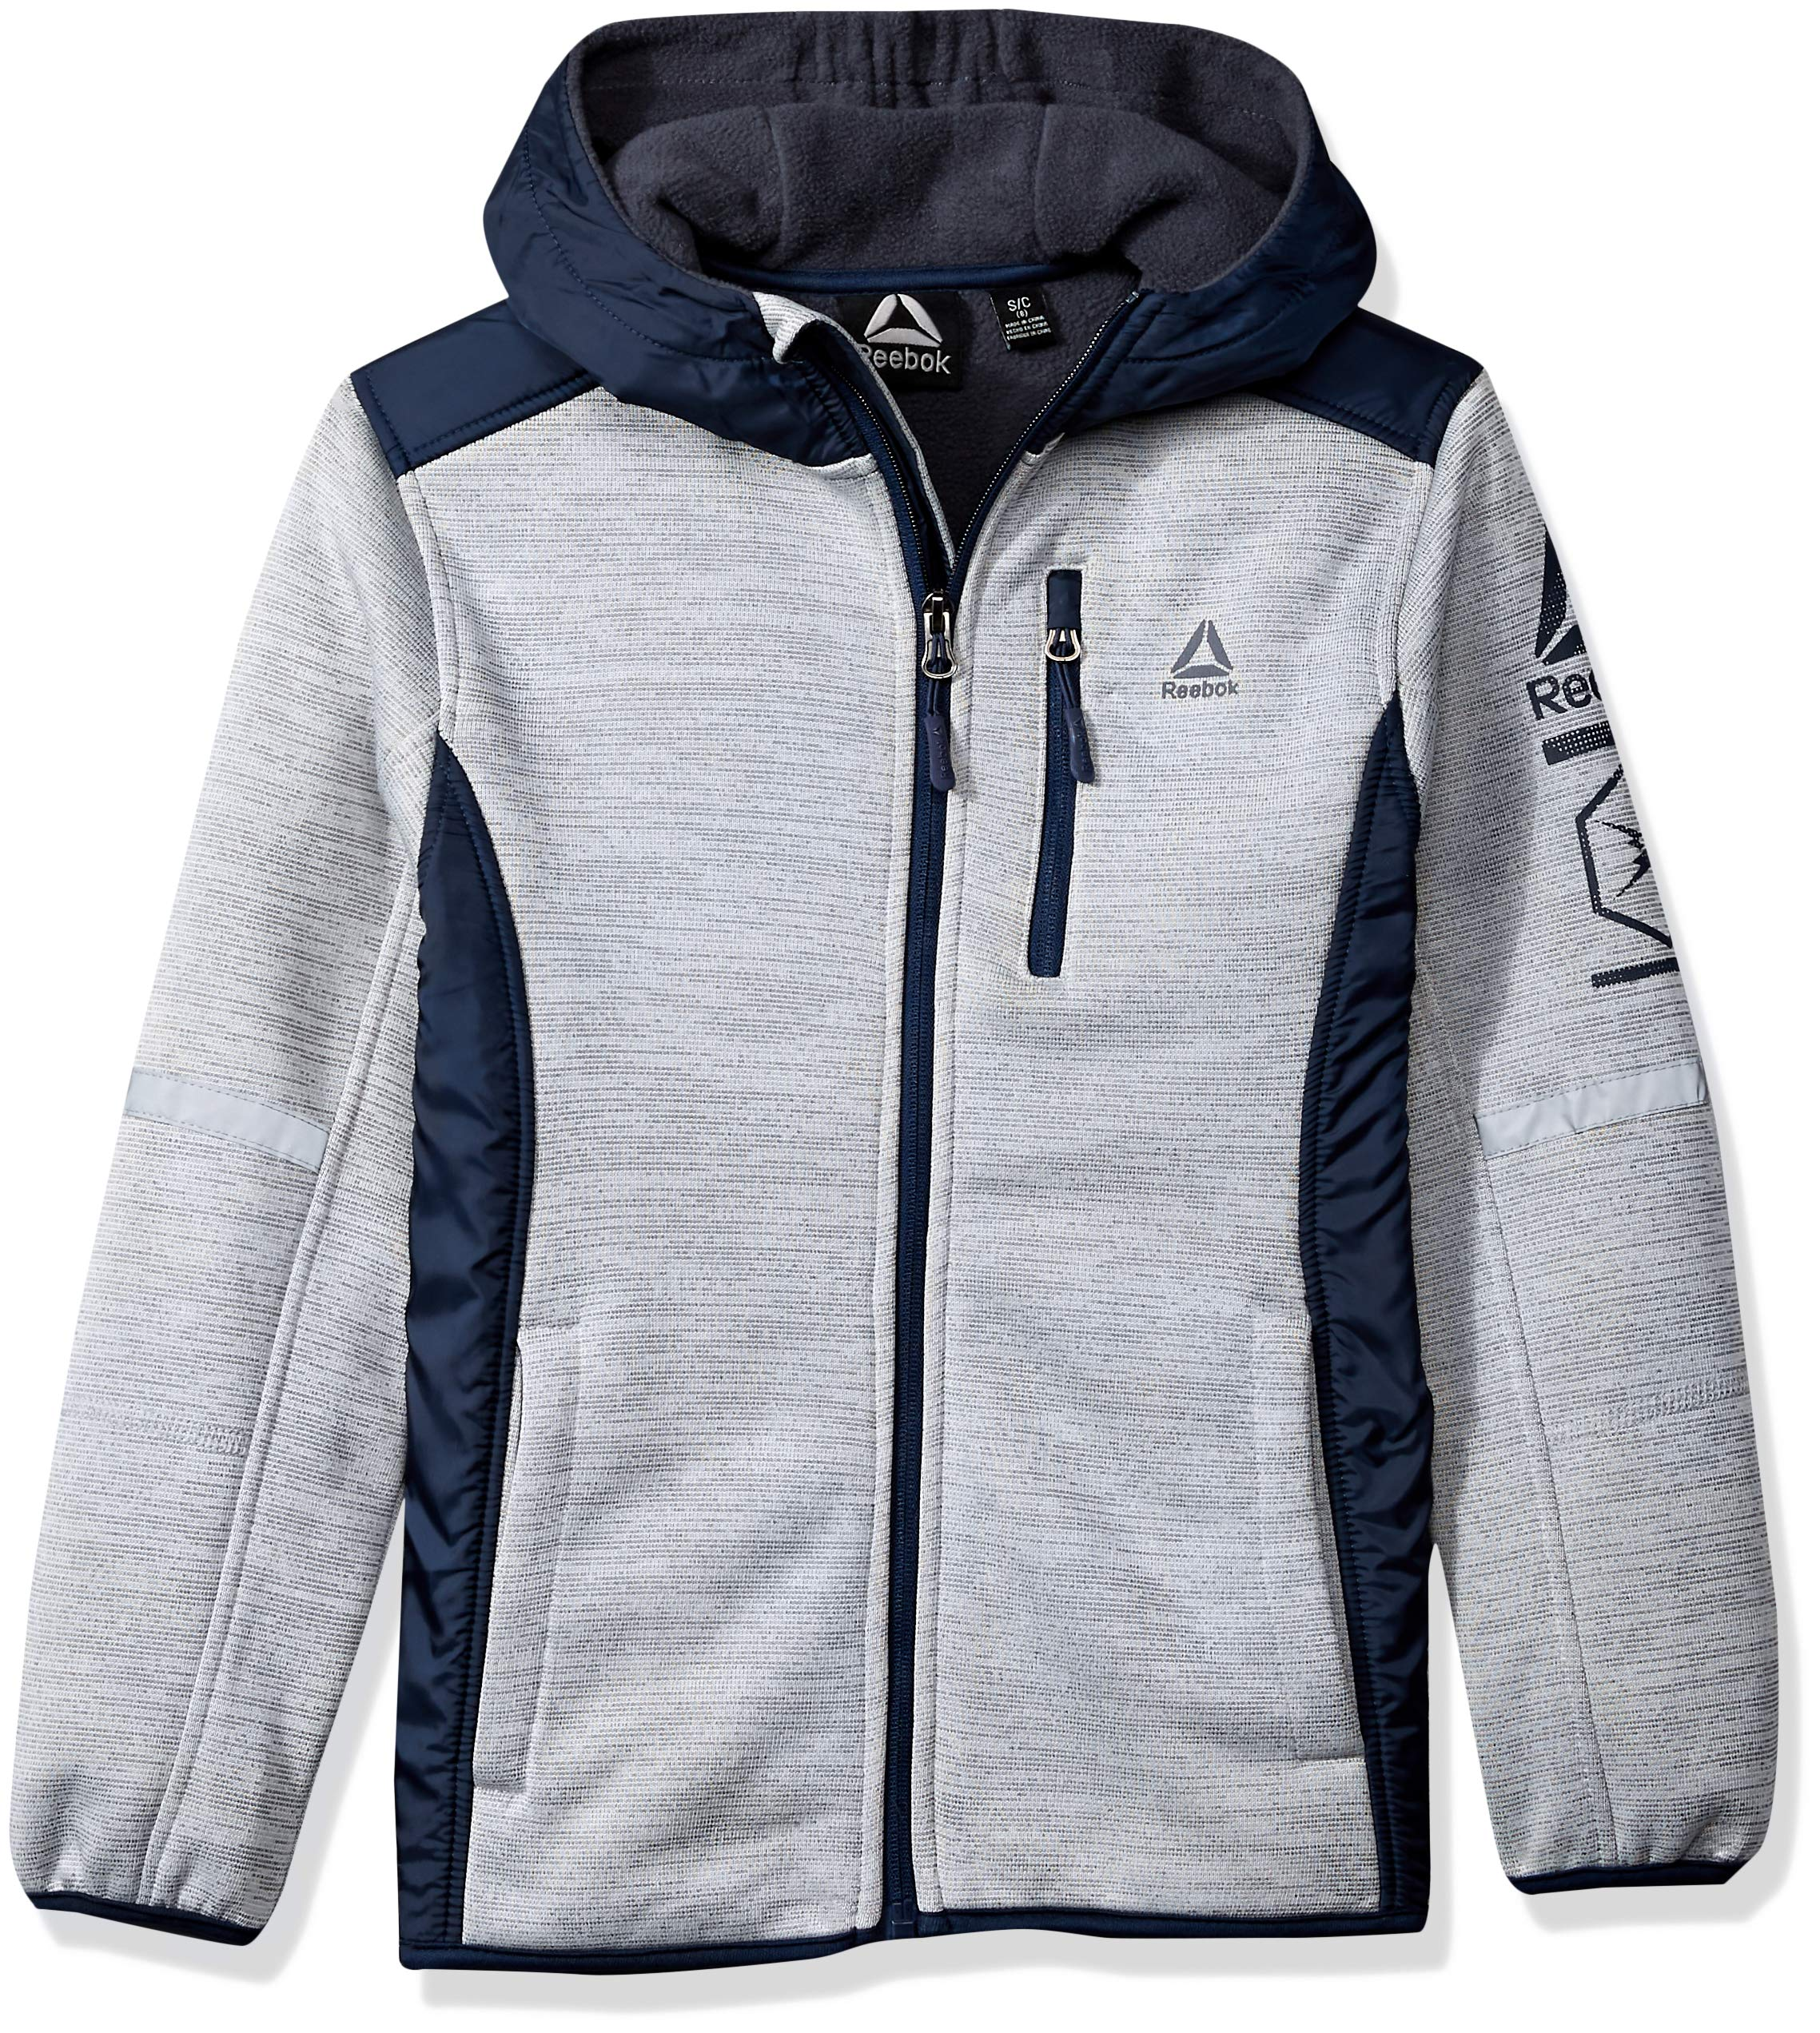 Reebok Boys' Big Active Simple Soft Fleece Jacket, Grey/Navy, 10/12